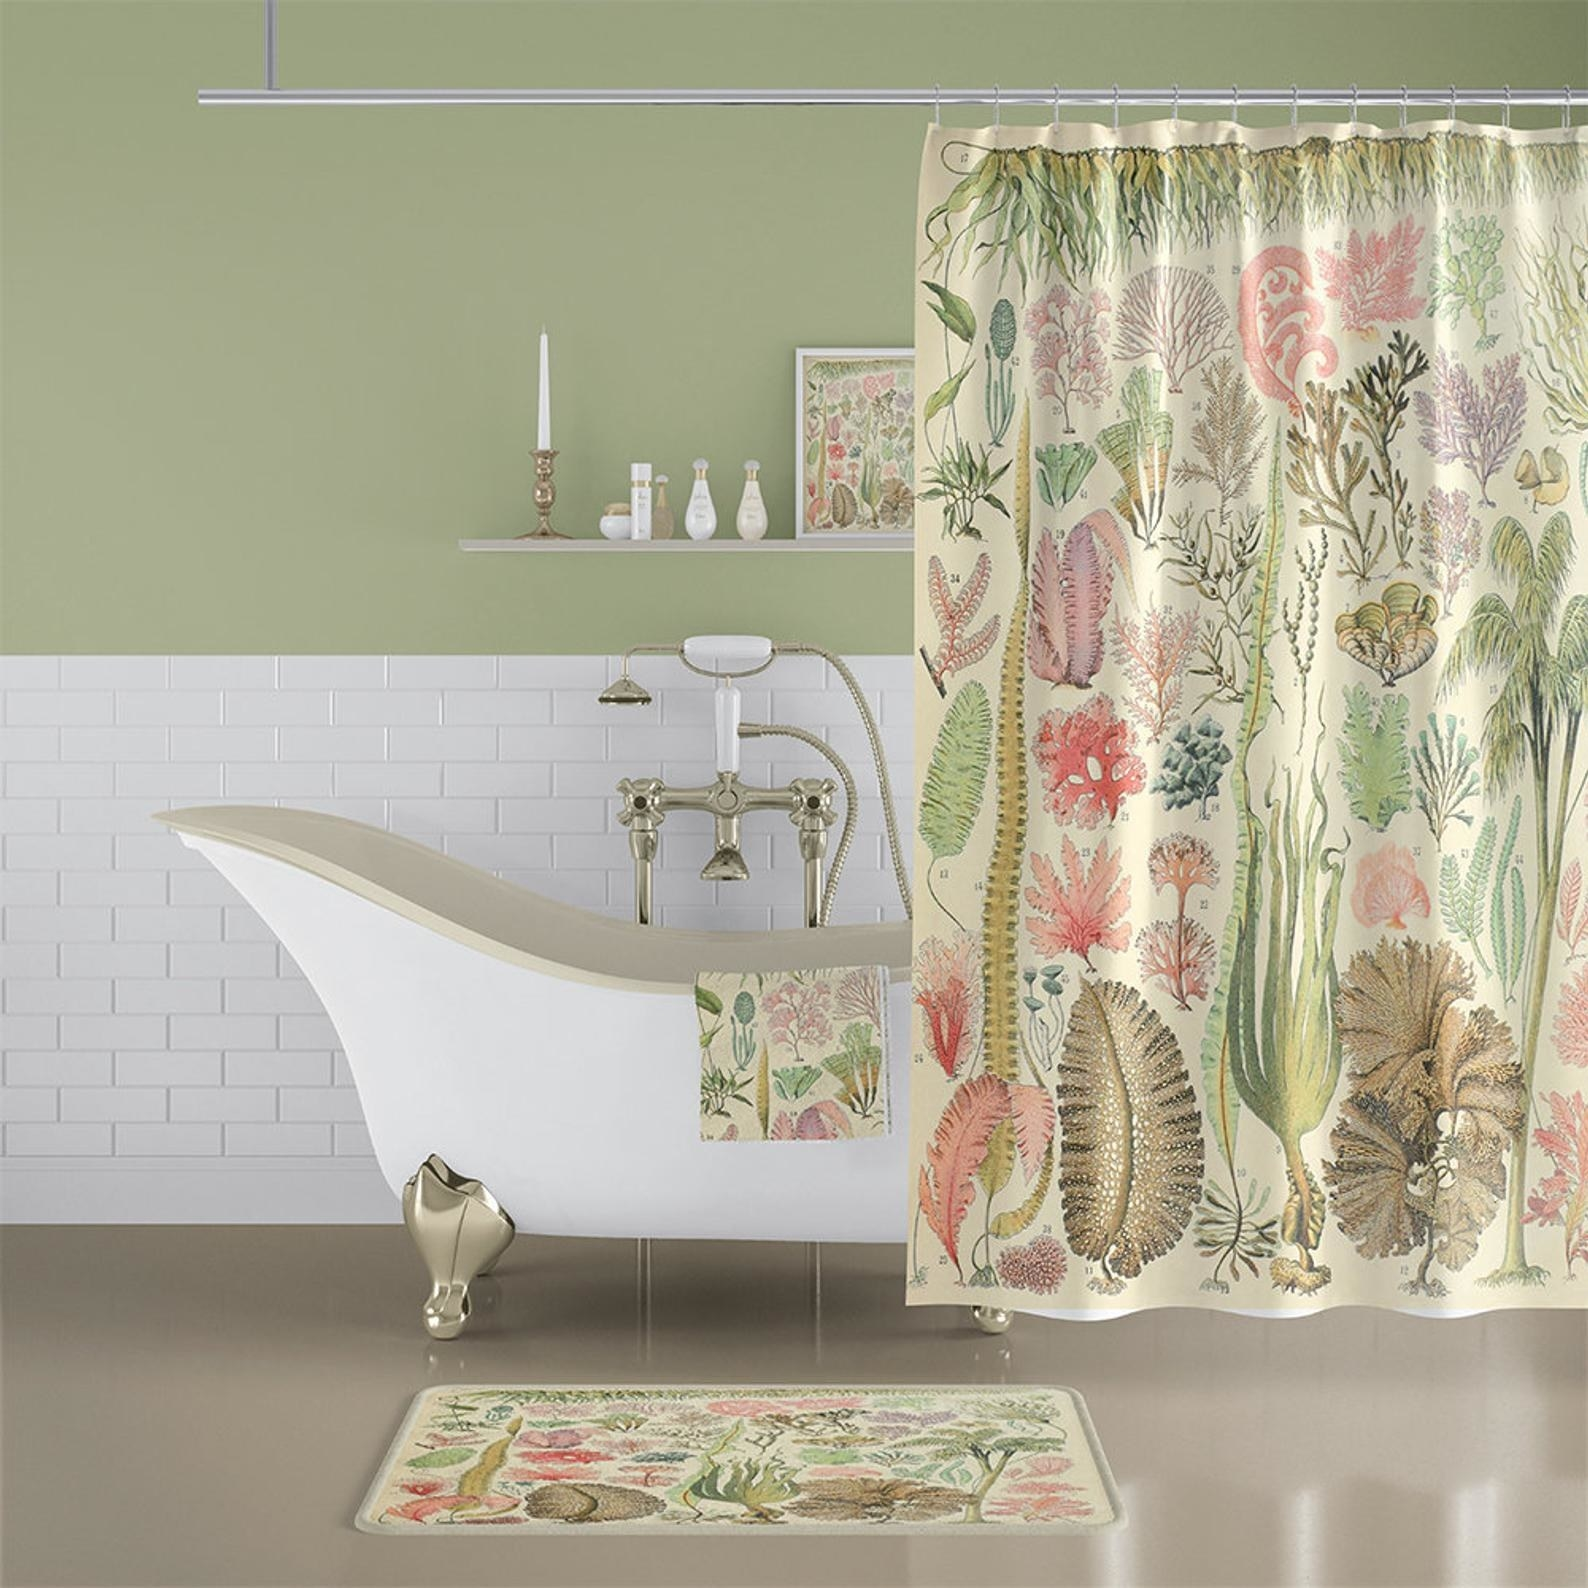 The matching shower curtain, bathmat, and towel in a bathroom